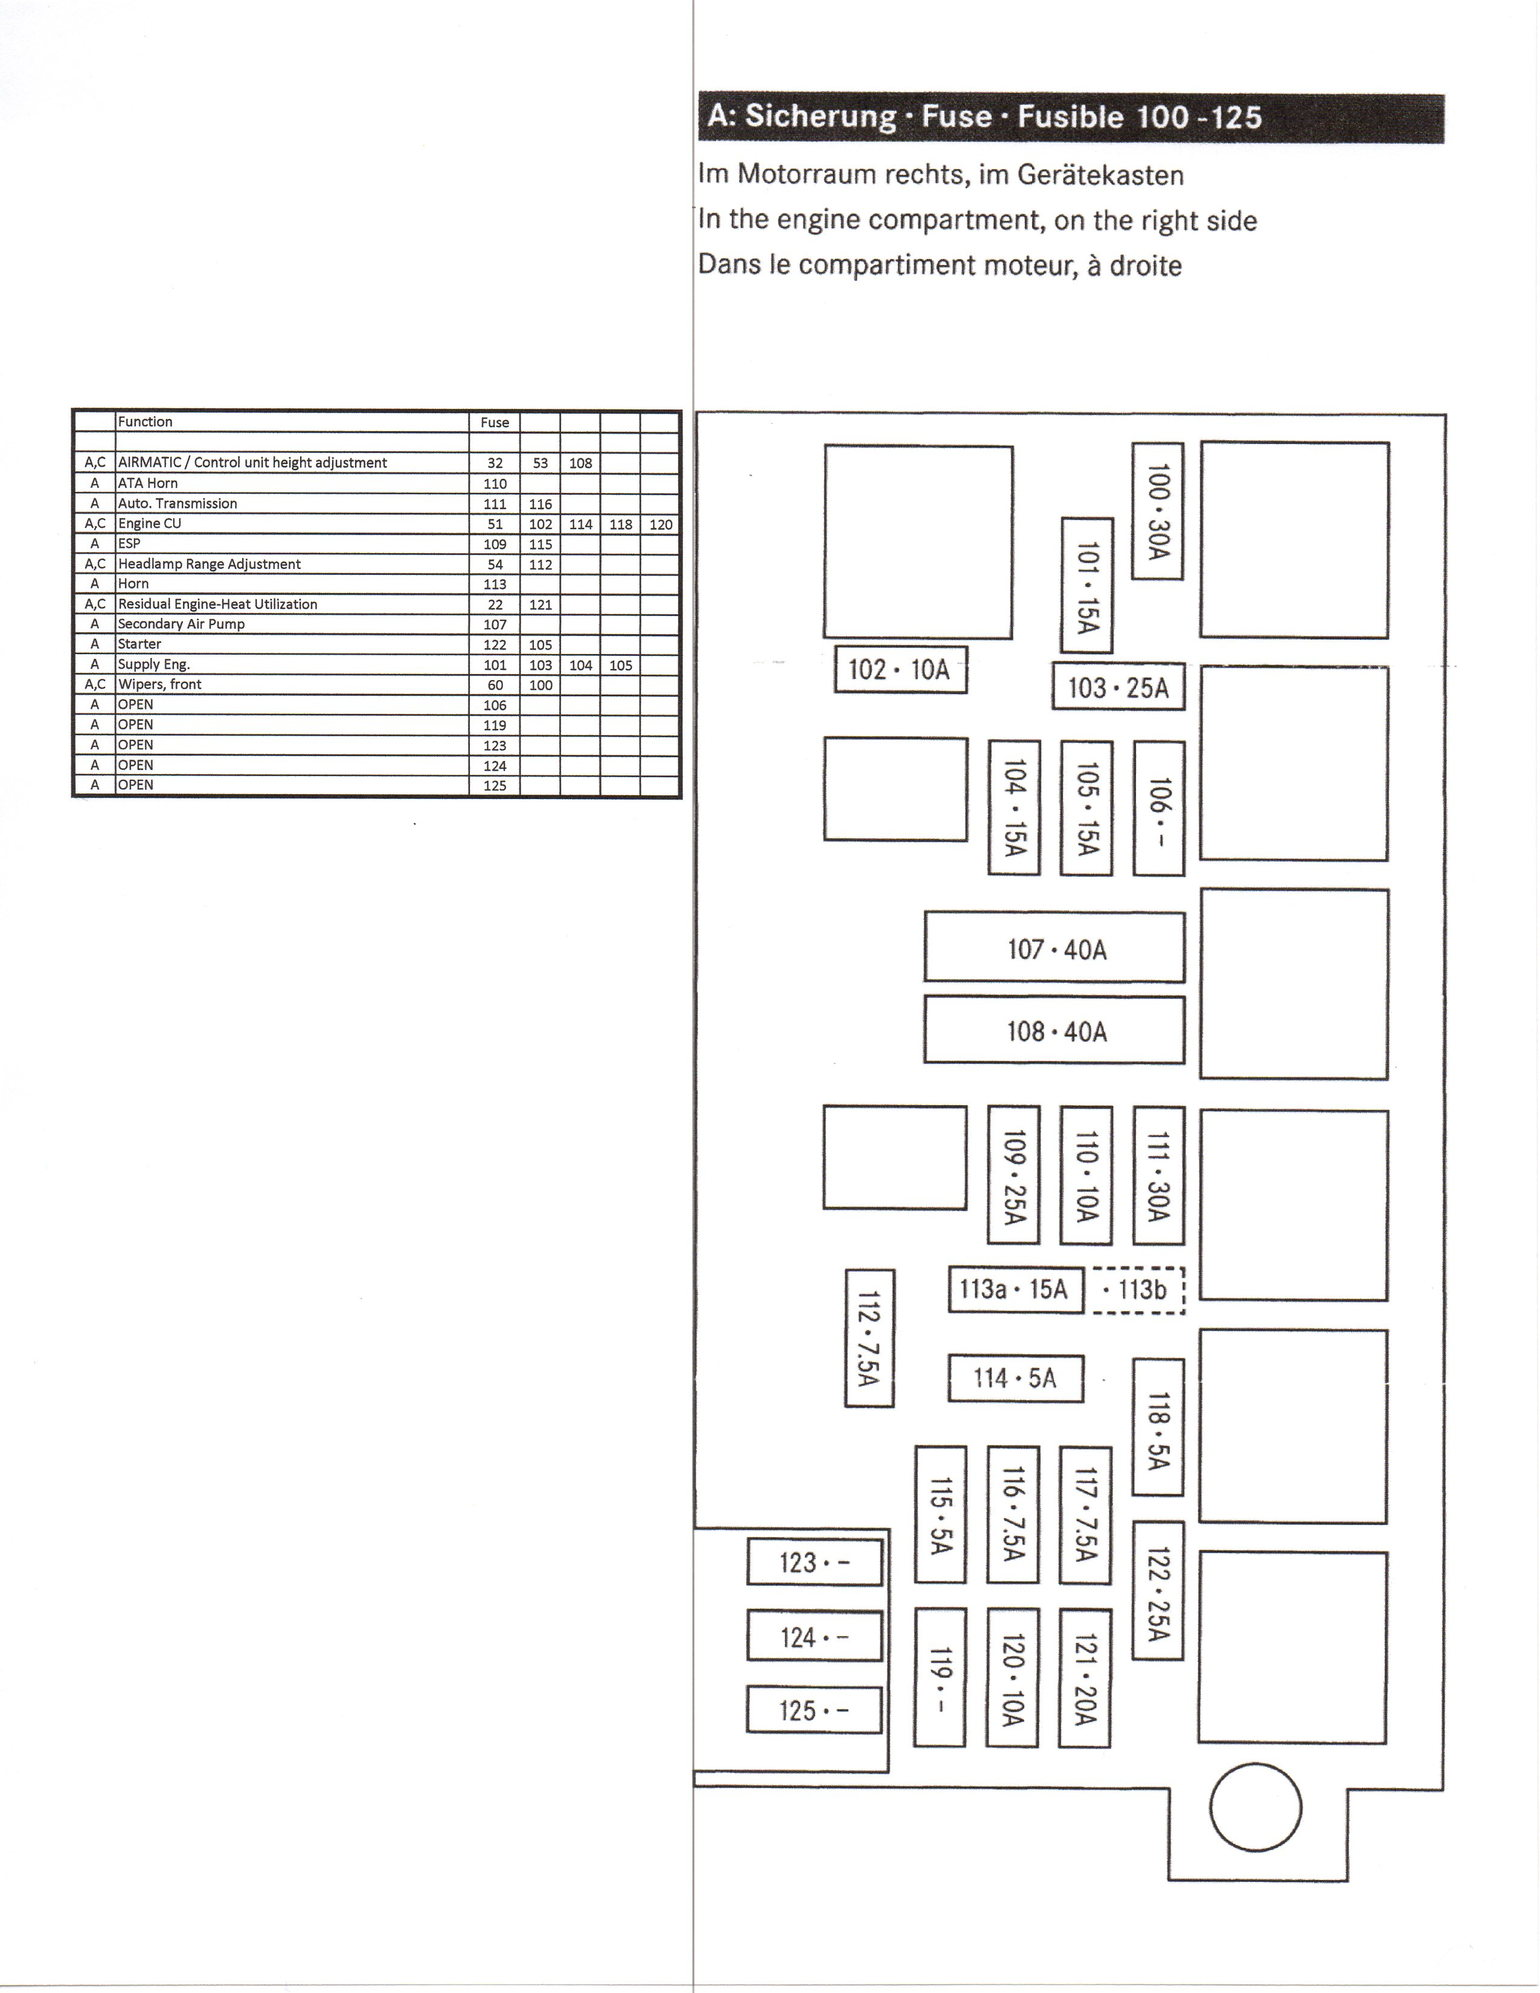 W203 Fuse Box Location